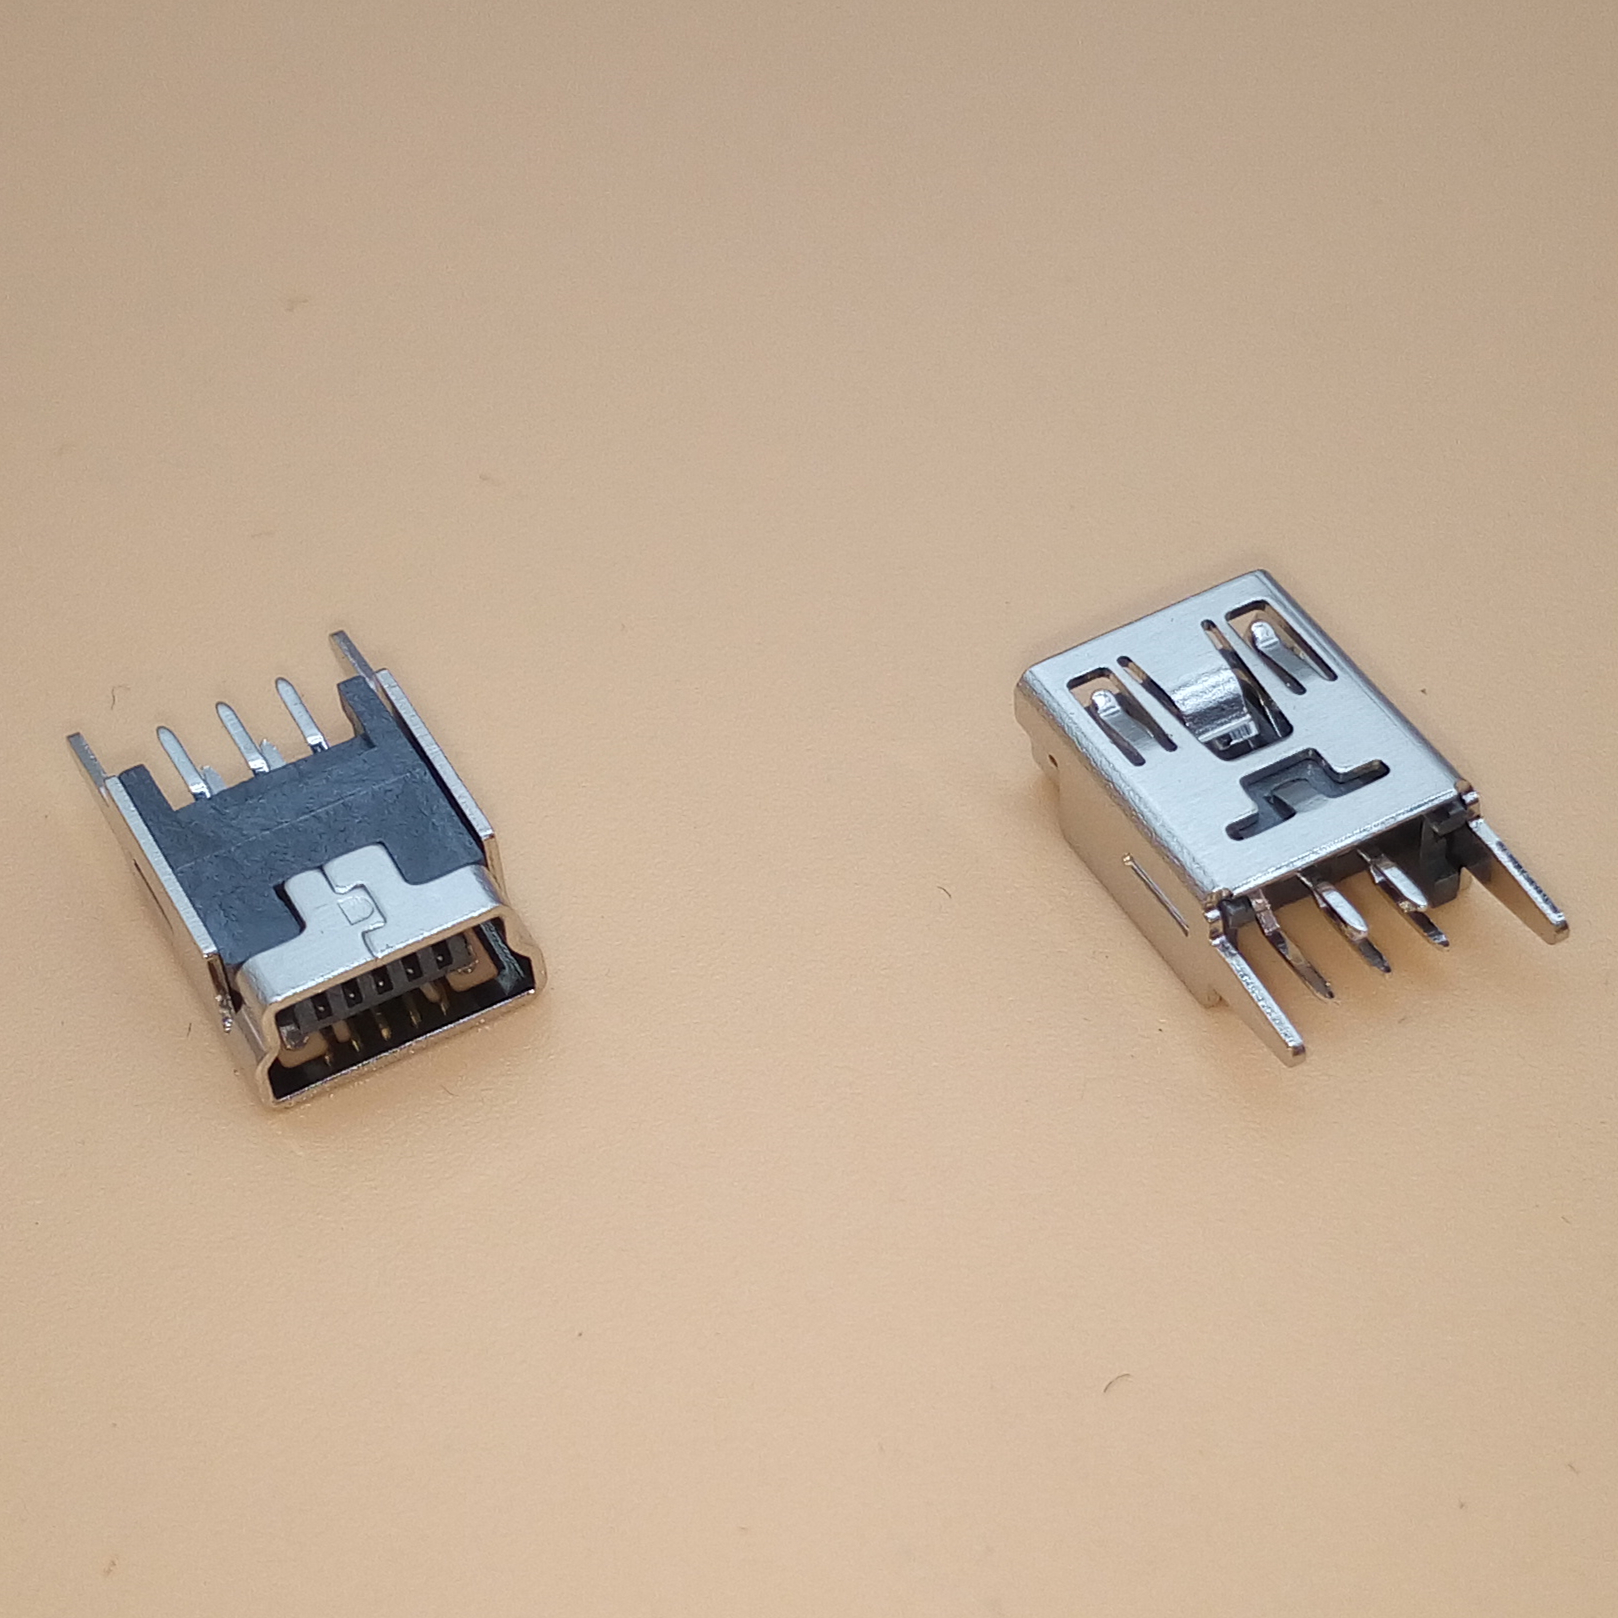 10Pcs USB 2.0 Type A Female 4 Pin Right Angle Reverse Backward DIP Connector